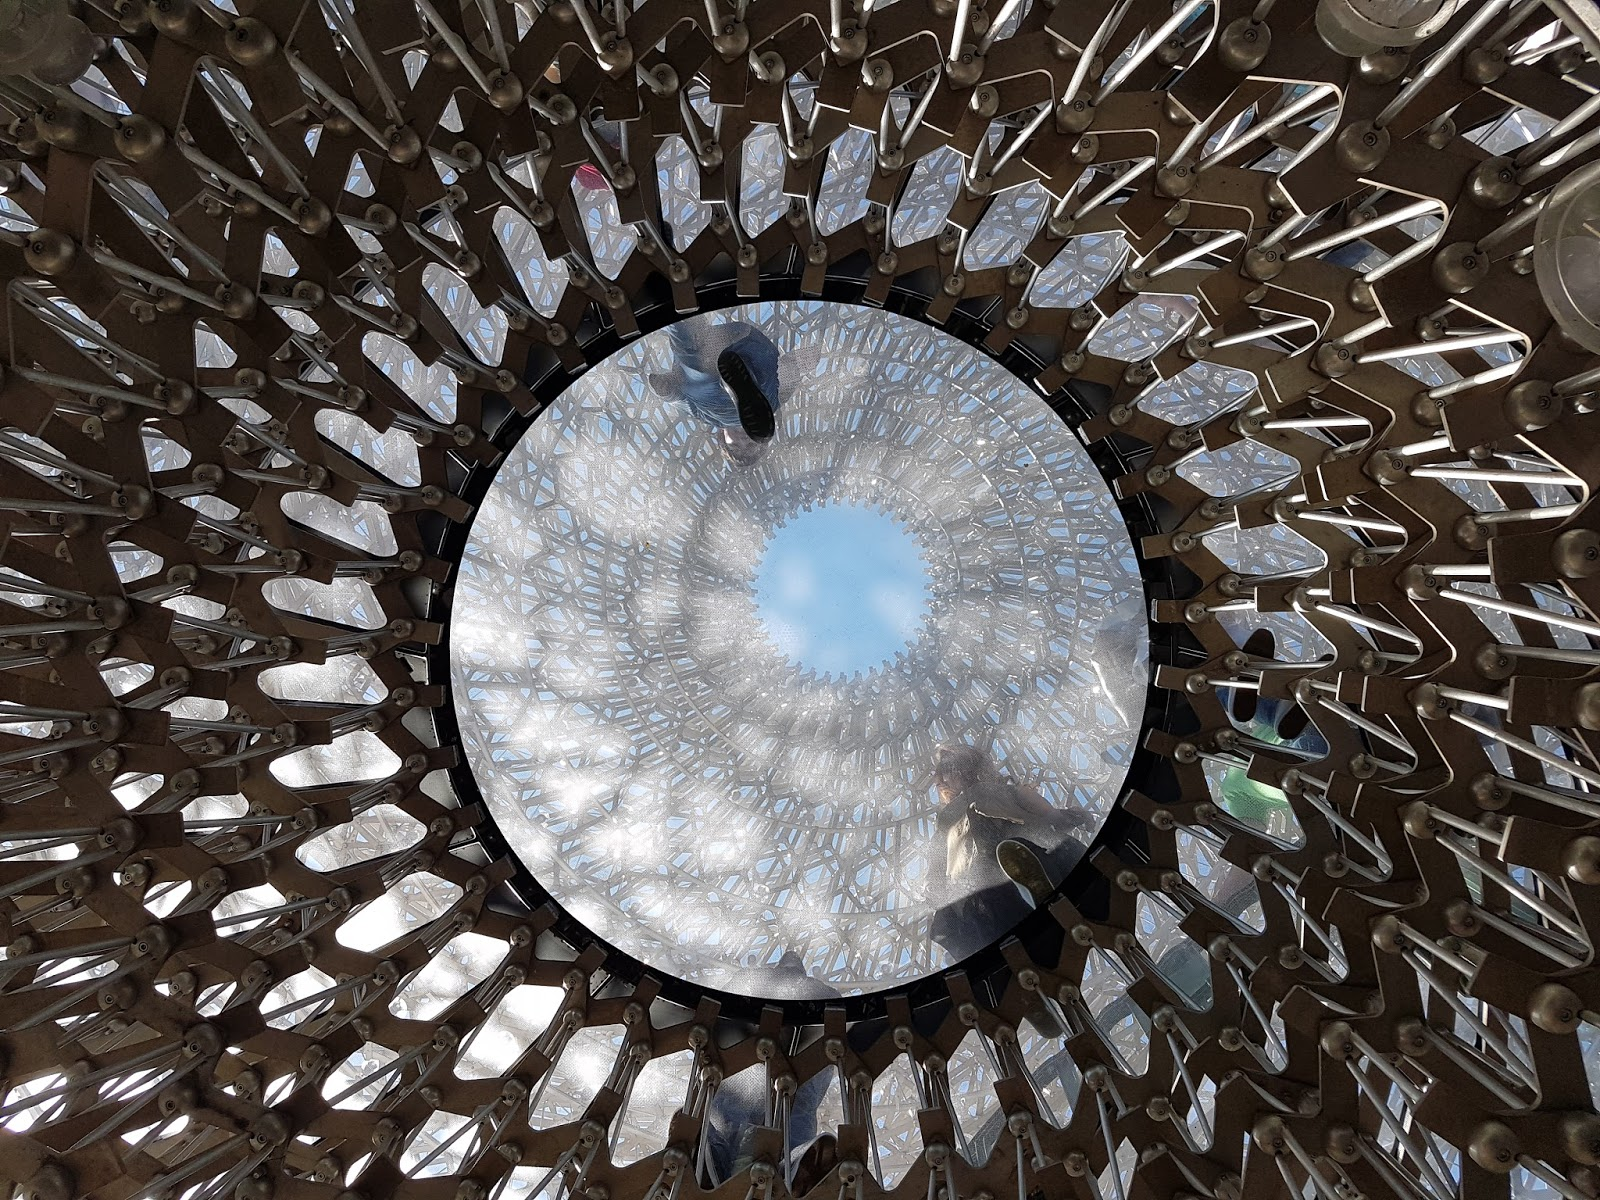 The Hive bee nest structure at Kew Gardens from below